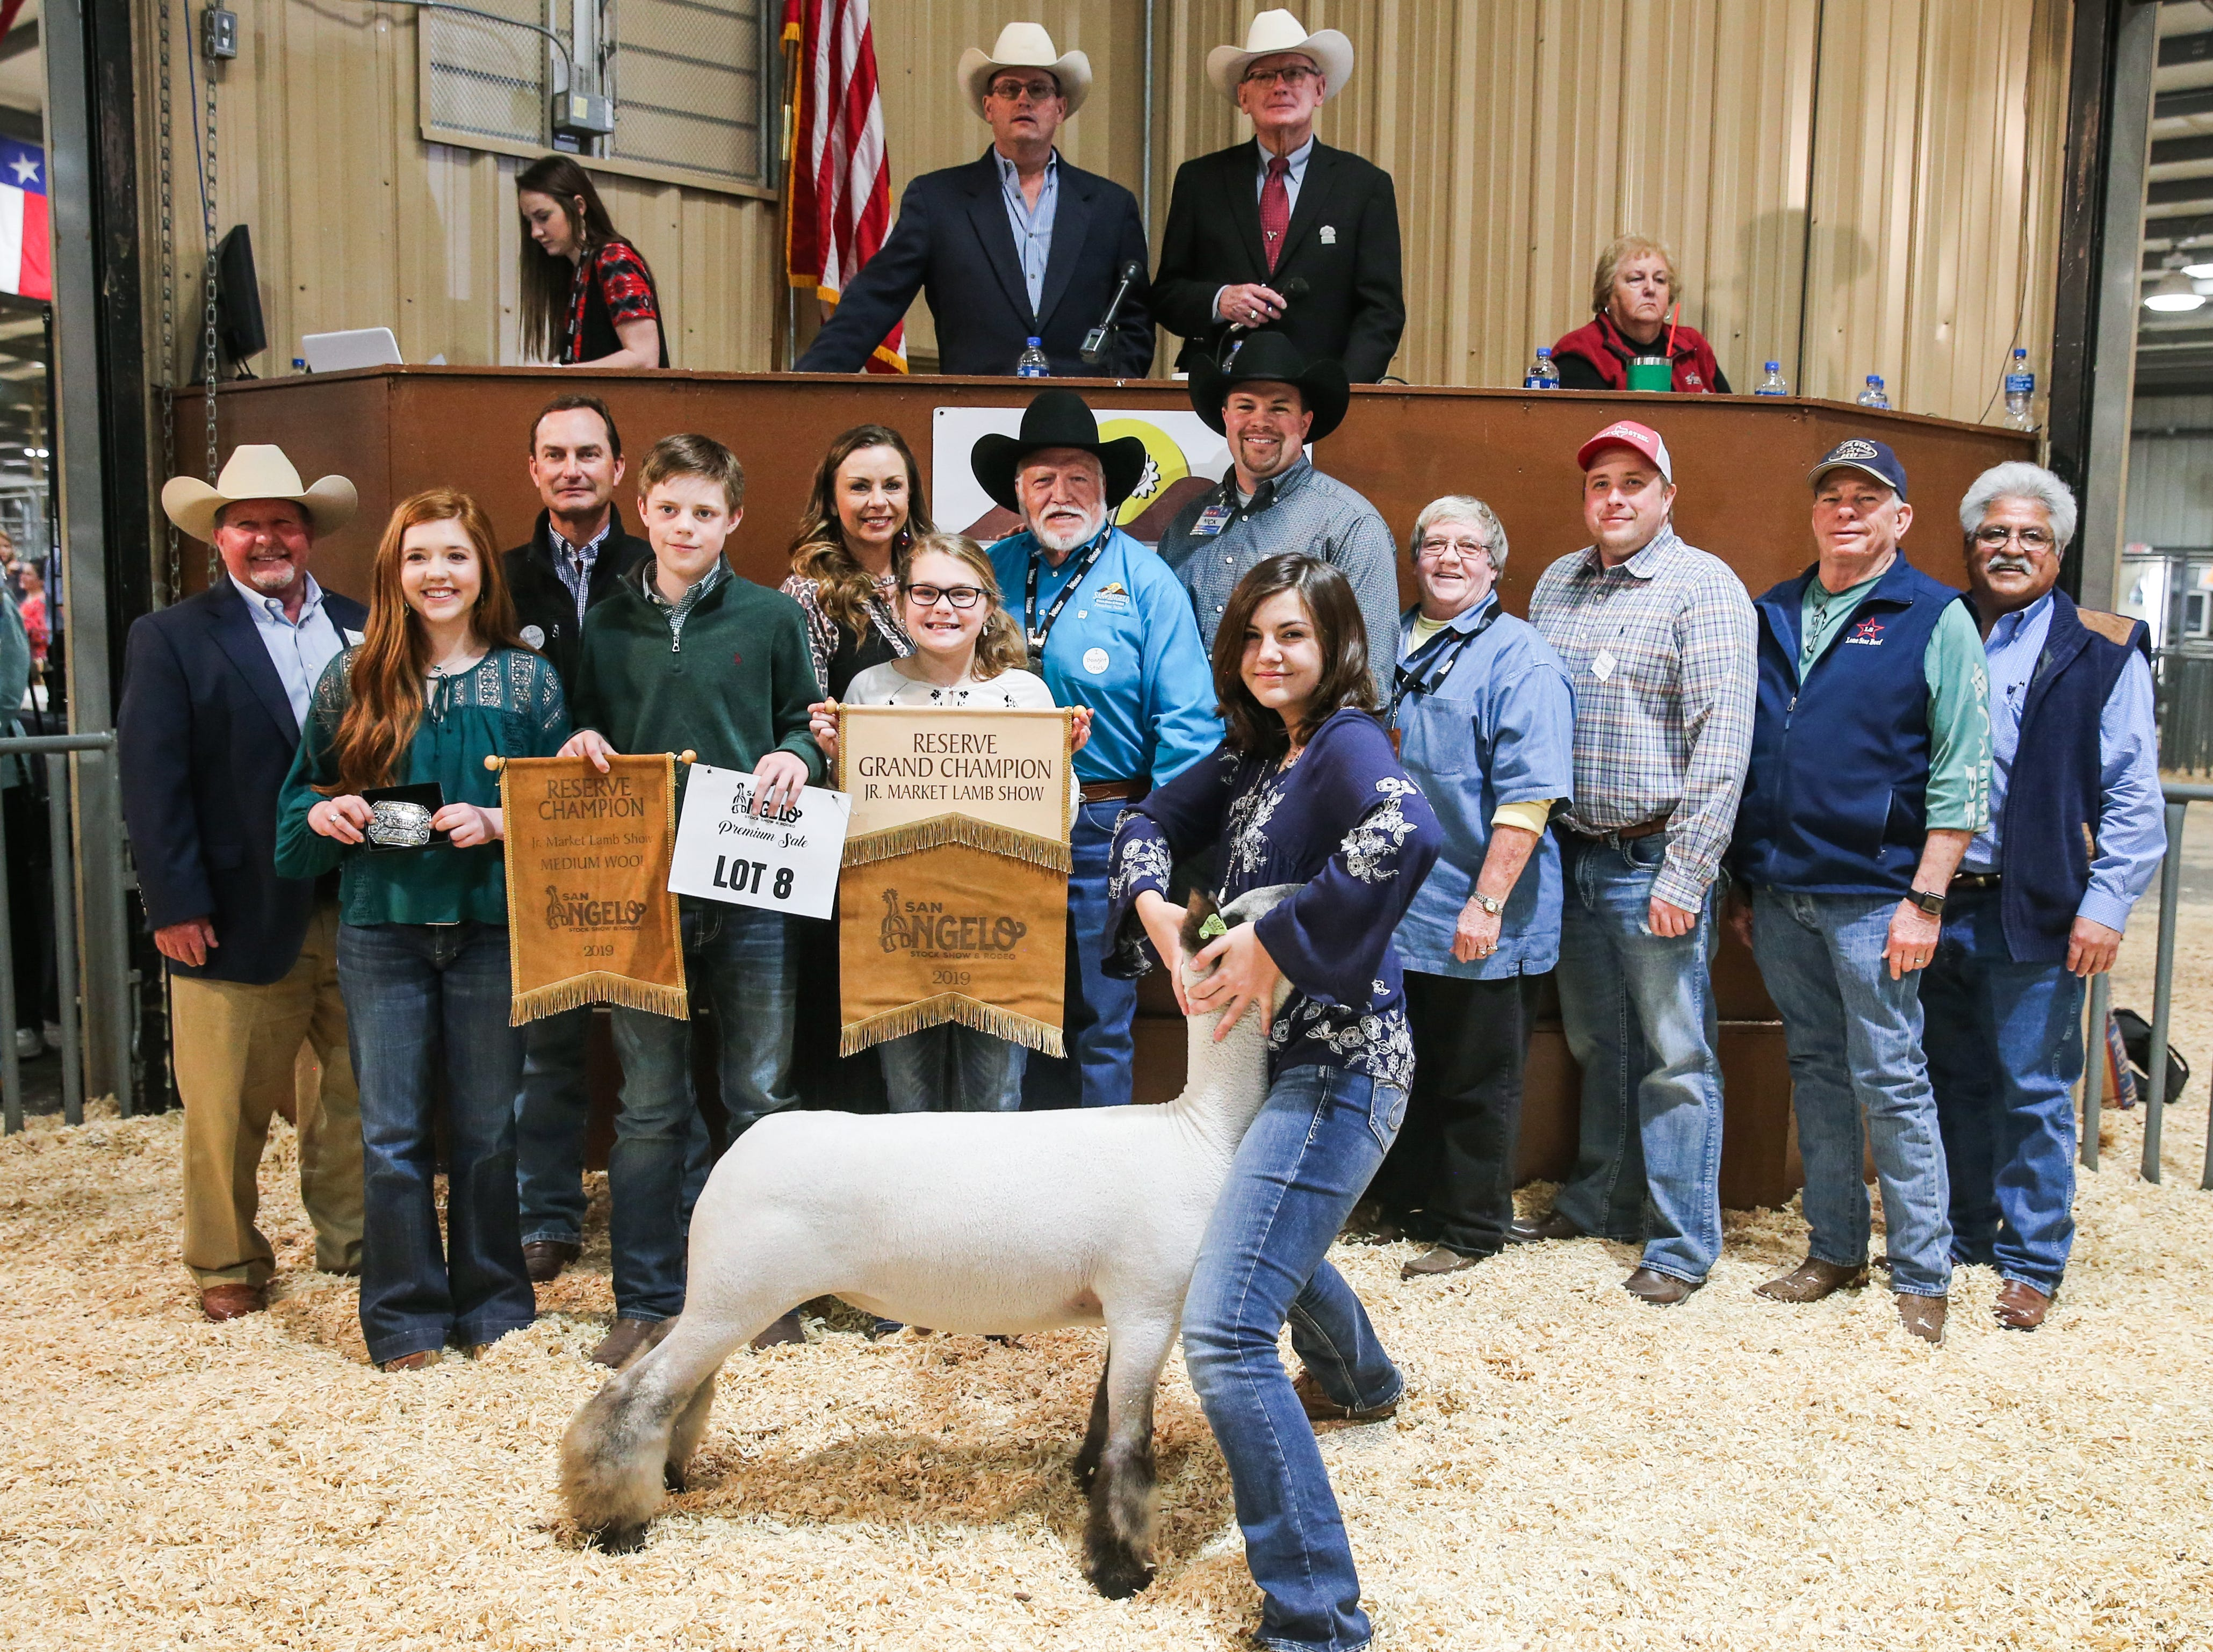 Reserve Grand Champion Lamb exhibited by Kaitlin Chabot of Falls County 4-H, sold for $14,000.From left to right: Todd Price, Jim Bass Ford; Carlye Winfrey (holding buckle), John Mayer, Mayer Ranch; Hudson Franklin (holding banner); Bridget Carr, Carr Clinic; McKinley Clem (holiding banner); Clay Cross, Cross Country Construction; Nick George, H-E-B; Kaitlin Chabot (exhibitor); Patsy McIntire, Bug Express; Bubba Davis, West Texas Steel; Chuck Jones, Lone Star Beef; Raymond Meza, Twin Mountain Fence Company. Not pictured: Neff Livestock/Texas Water & Soil, Weatherby Ranch, Saddletramp Land & Cattle.